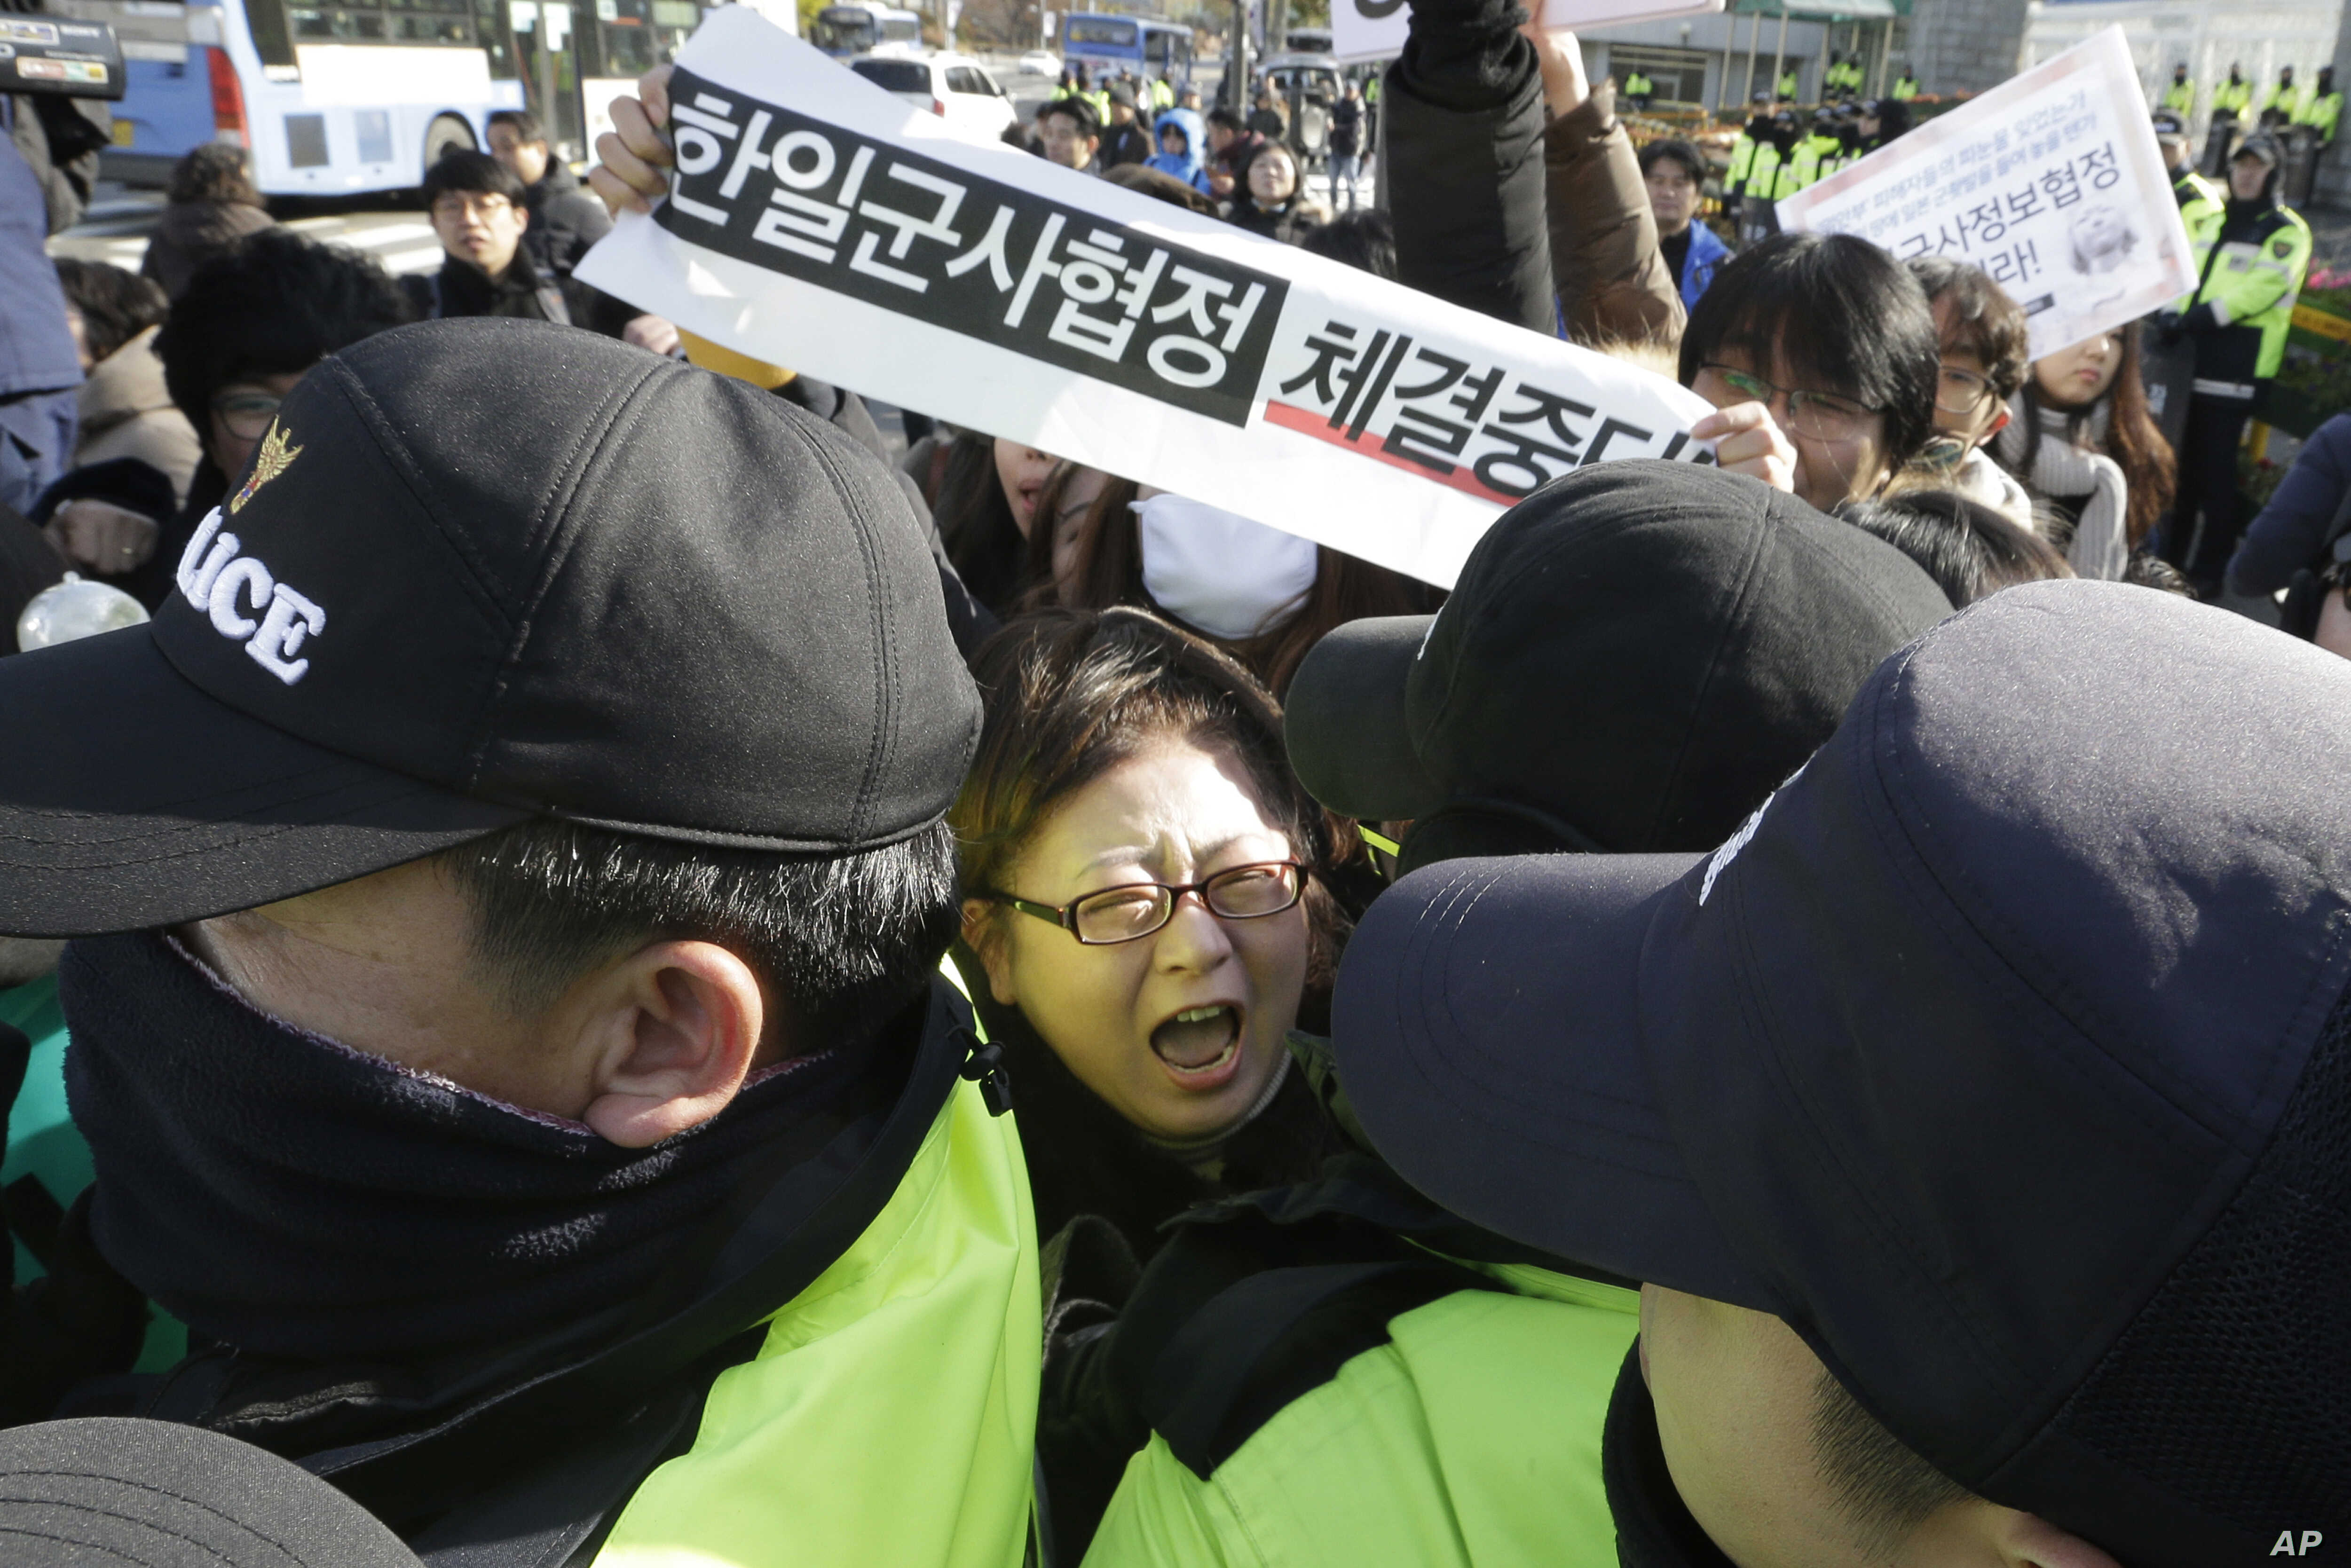 A South Korean protester scuffles with police officers during a rally to oppose the General Security of Military Information Agreement (GSOMIA) between South Korea and Japan, in front of the Defense Ministry in Seoul, South Korea, Nov. 23, 2016.